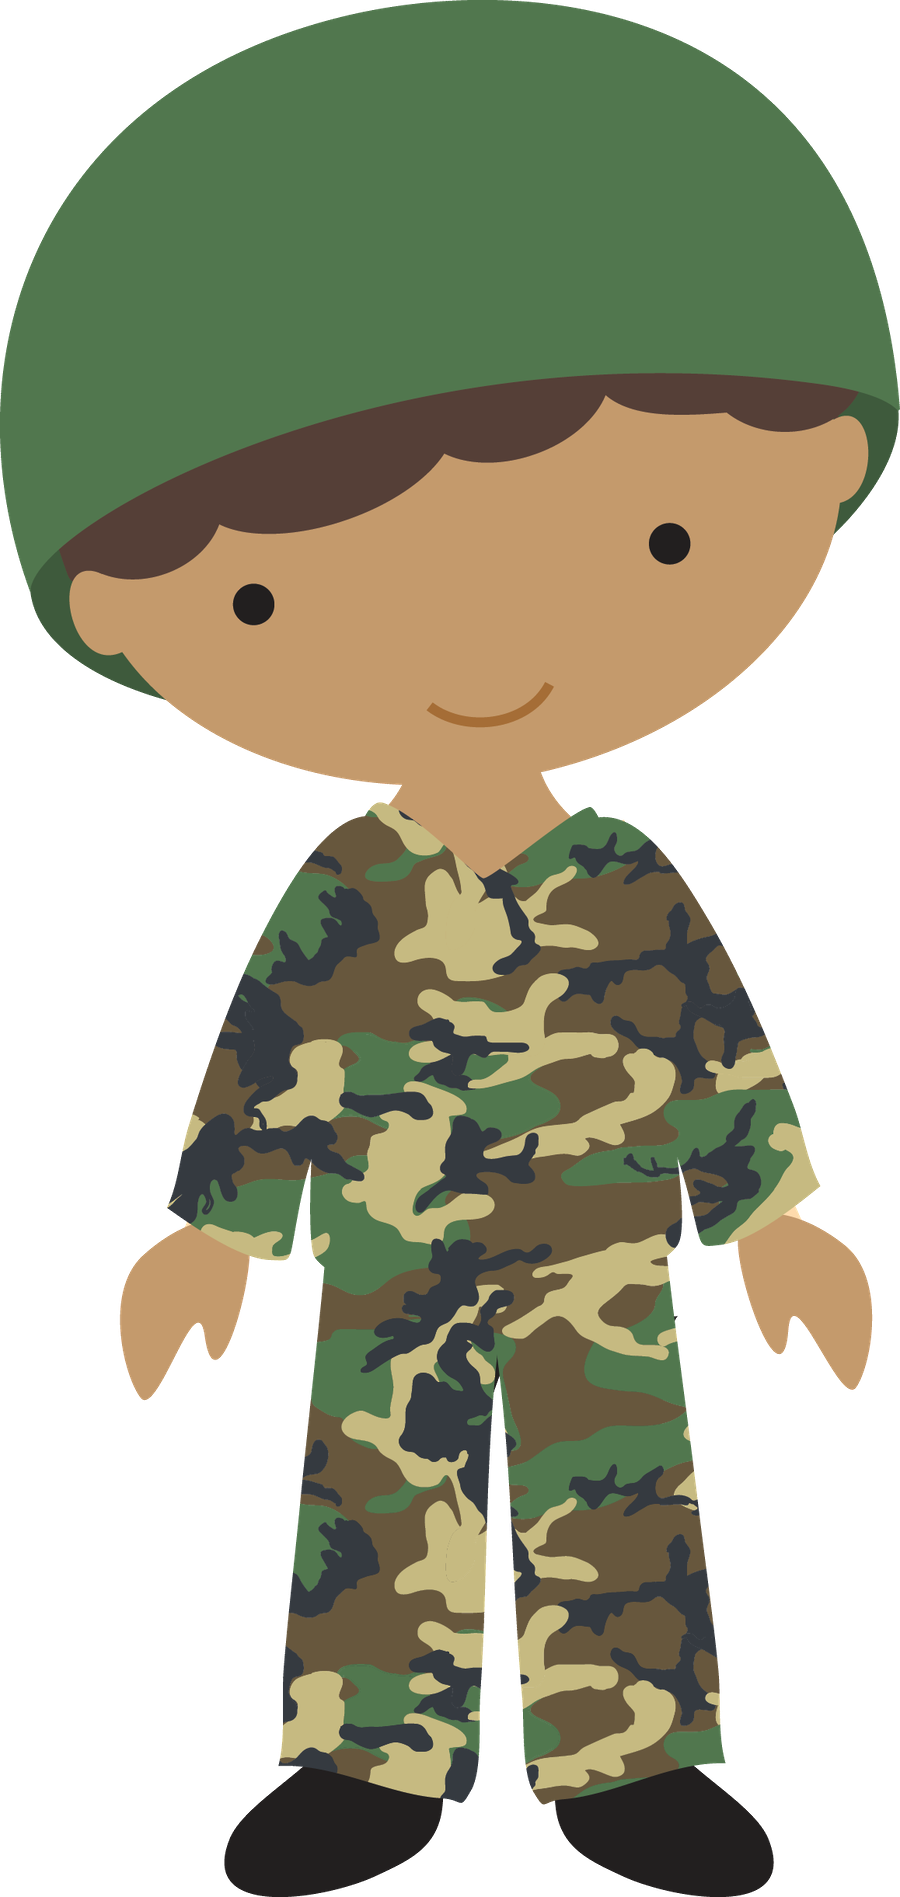 picture transparent Personagens minus an idea. Army man clipart